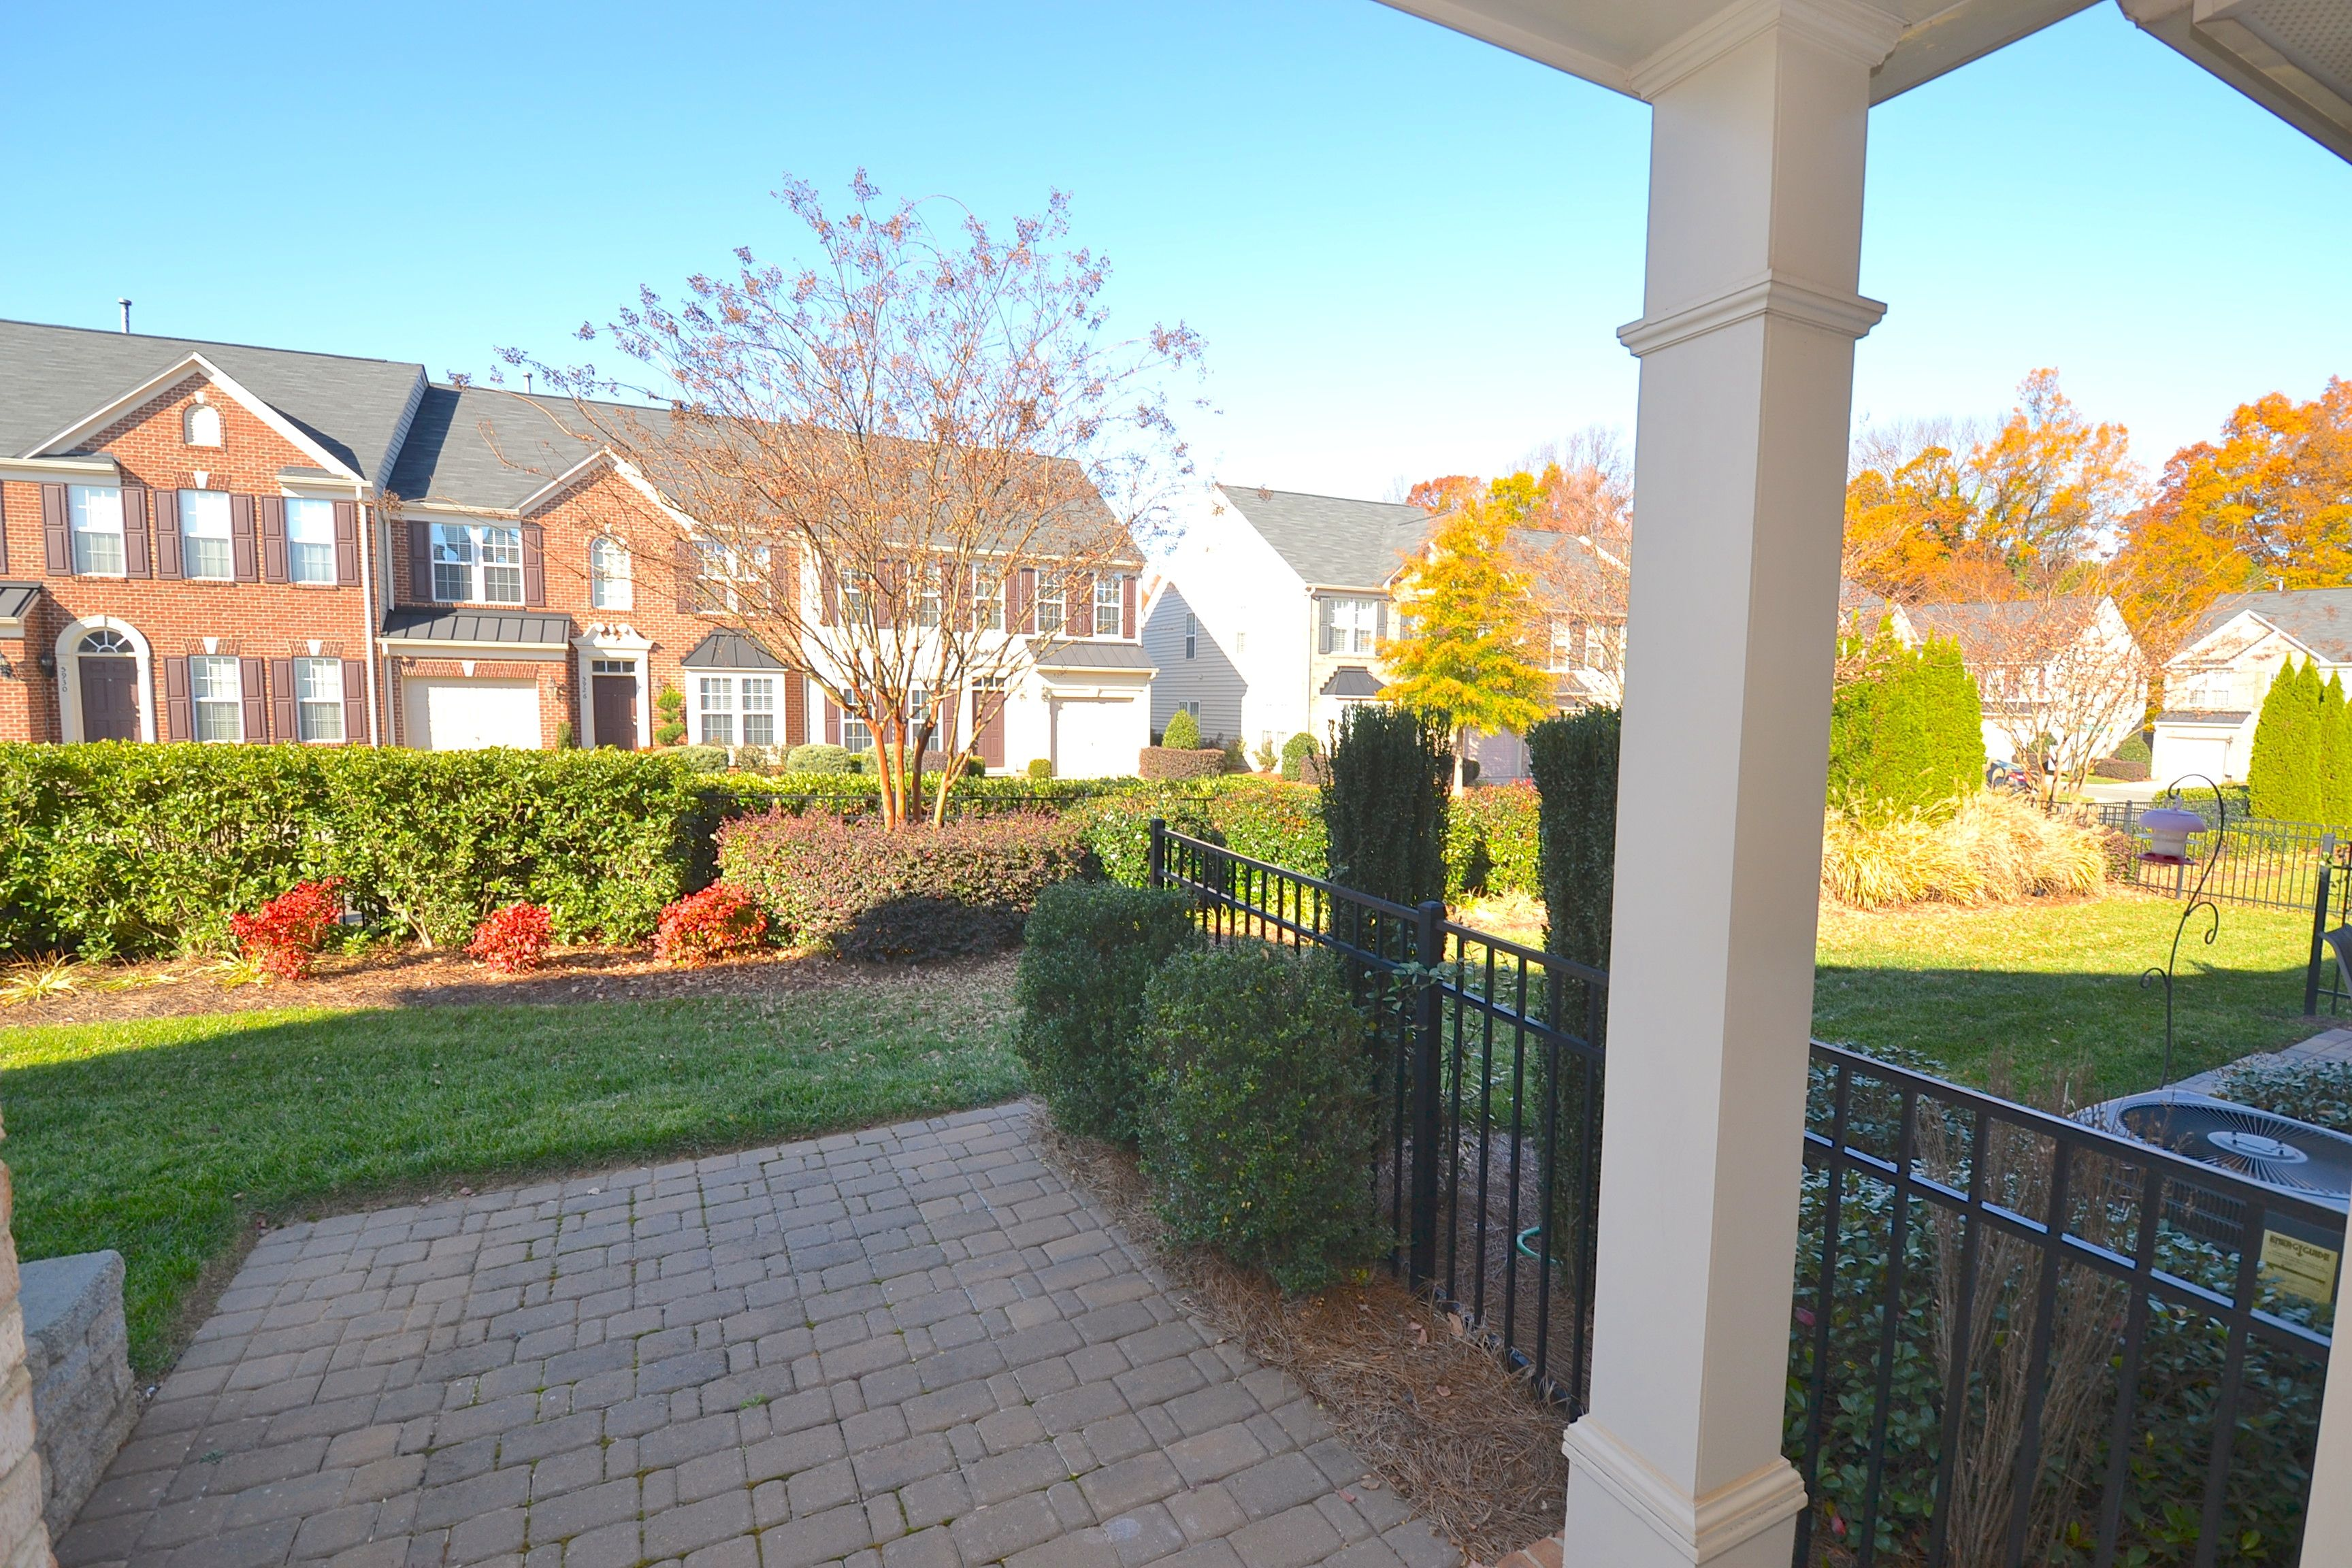 Top of the line townhome! Former Model Home! Gorgeous backyard! 6424 Union Station Court, Charlotte, NC 28210, USA http://www.leighsells.com/listings/6424-union-station-ct-charlotte-nc-28210/